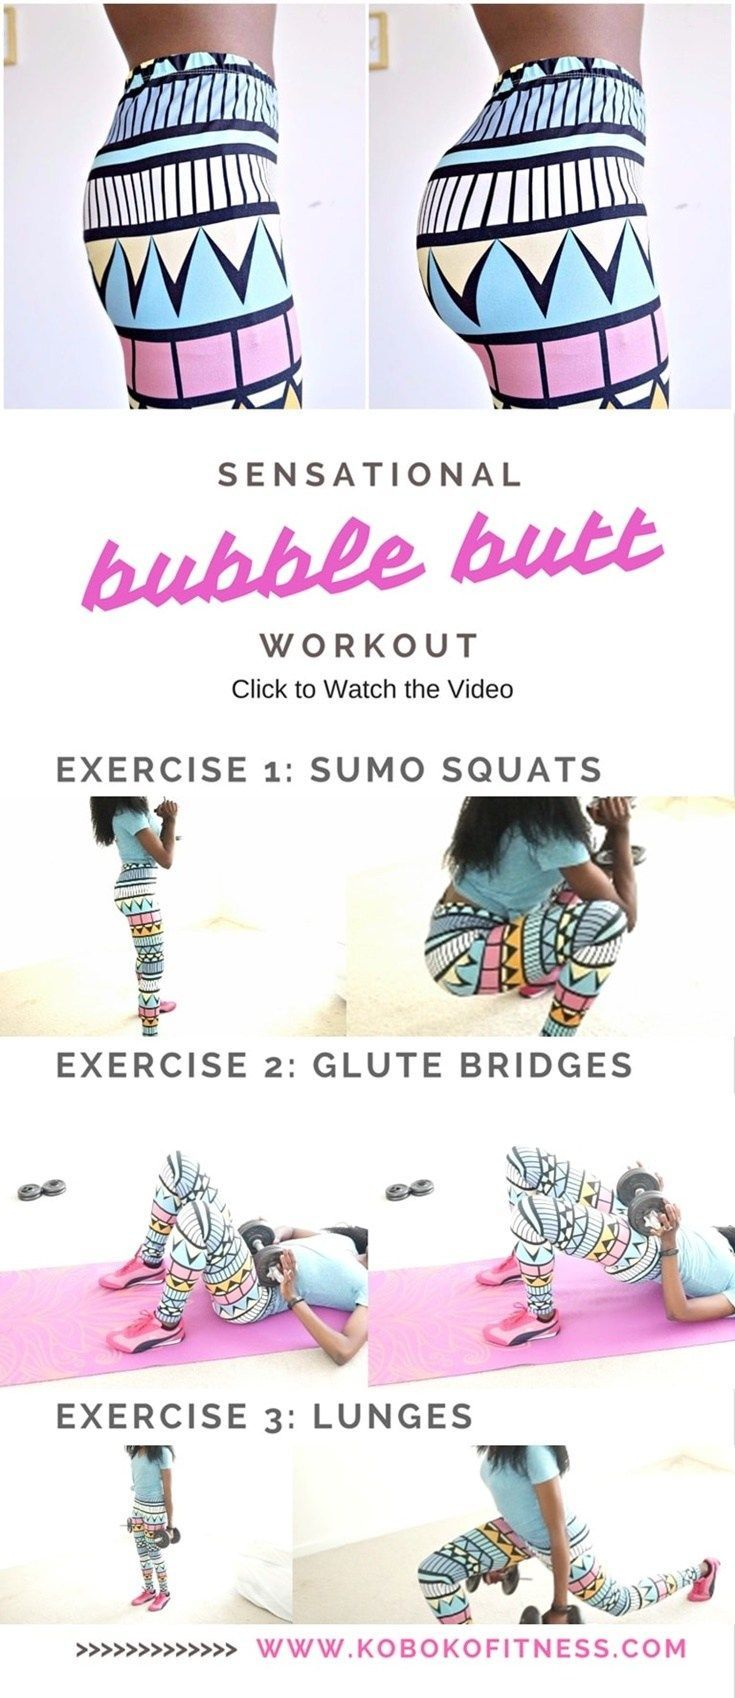 You will LOVE the results from this amazing butt workout with weights! Get that bubble butt you have always wanted!